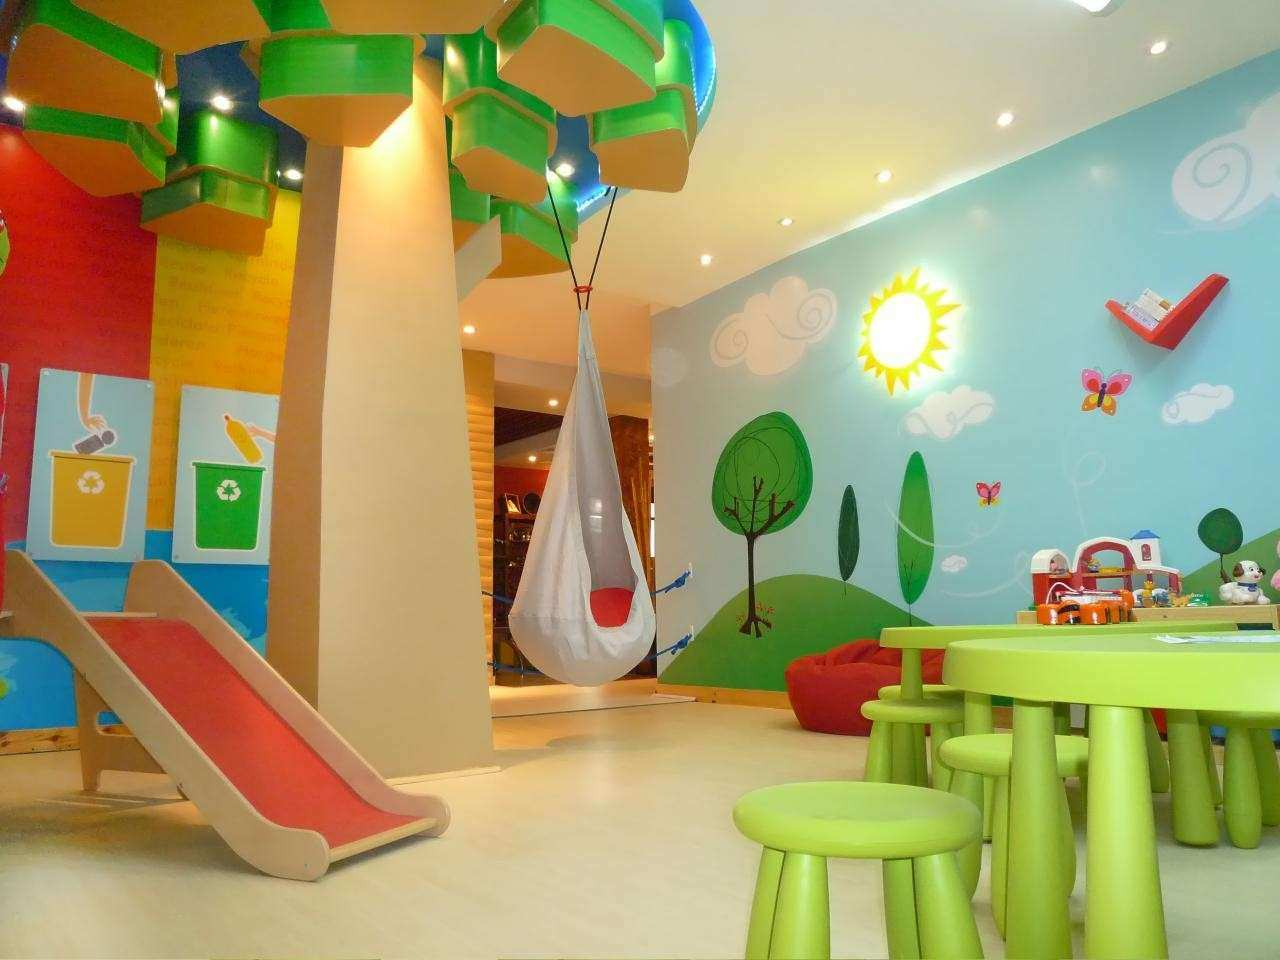 Playroom Wall Decor New Decorating Ideas For Fun Playrooms And Kids Bedrooms